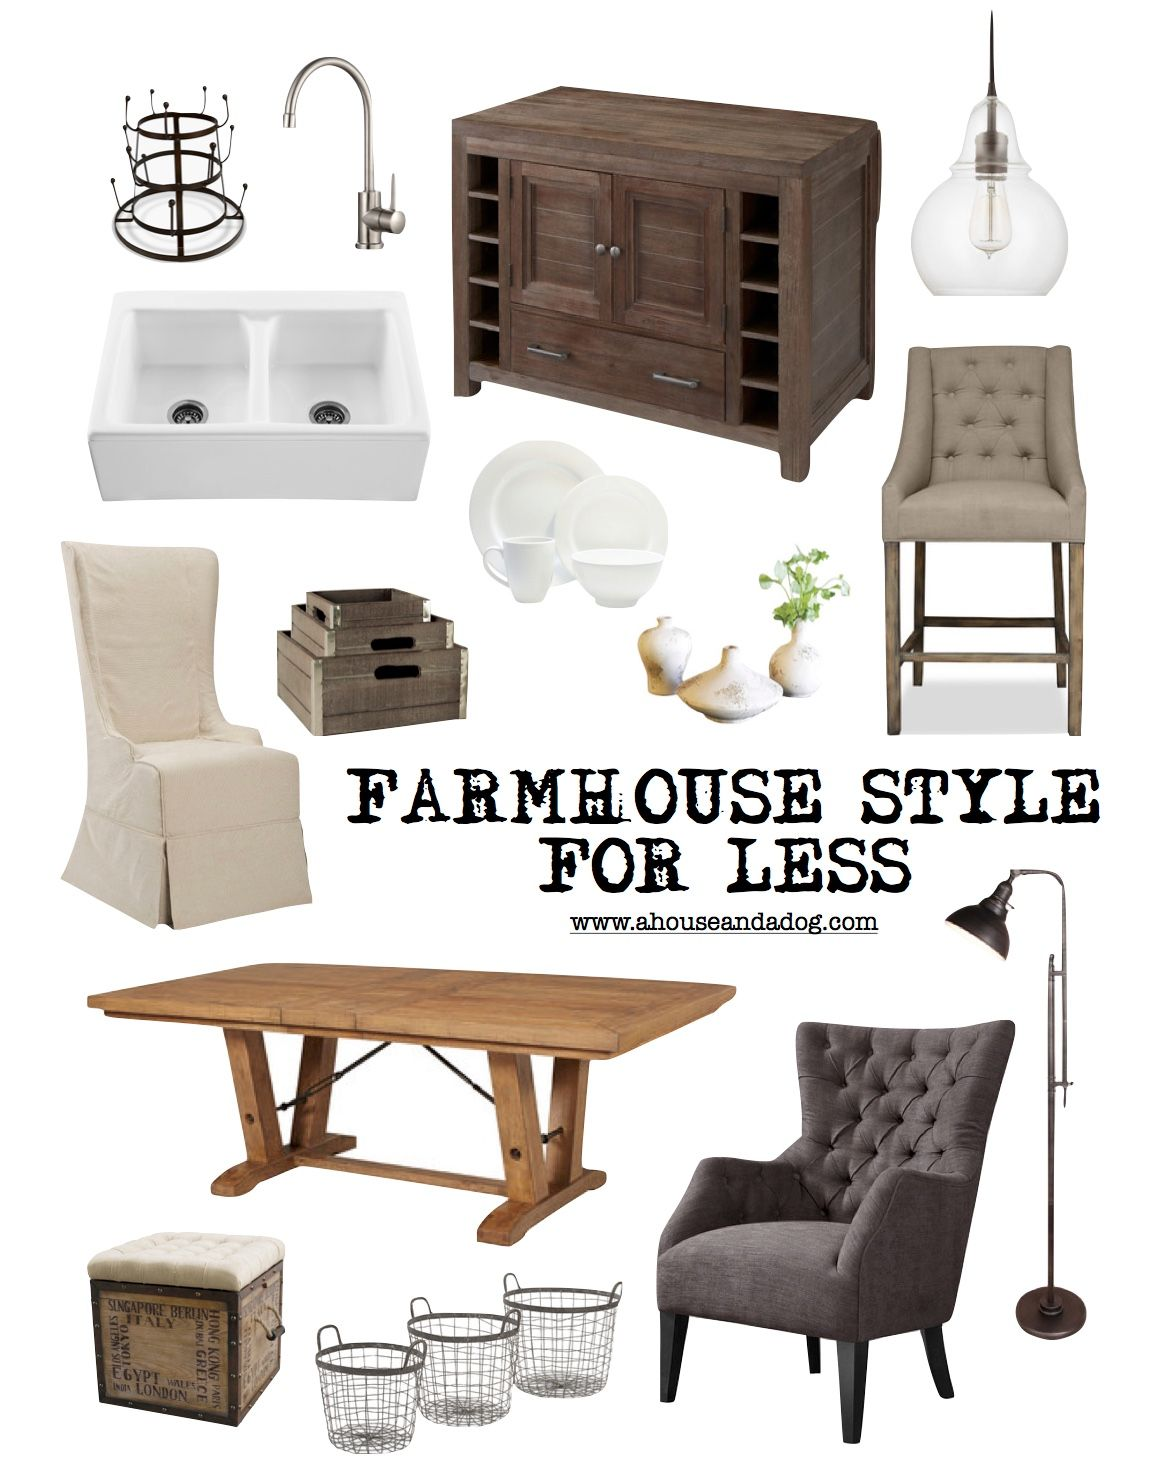 Fixer upper style a house and a dog decorating for In fixer upper is the furniture included